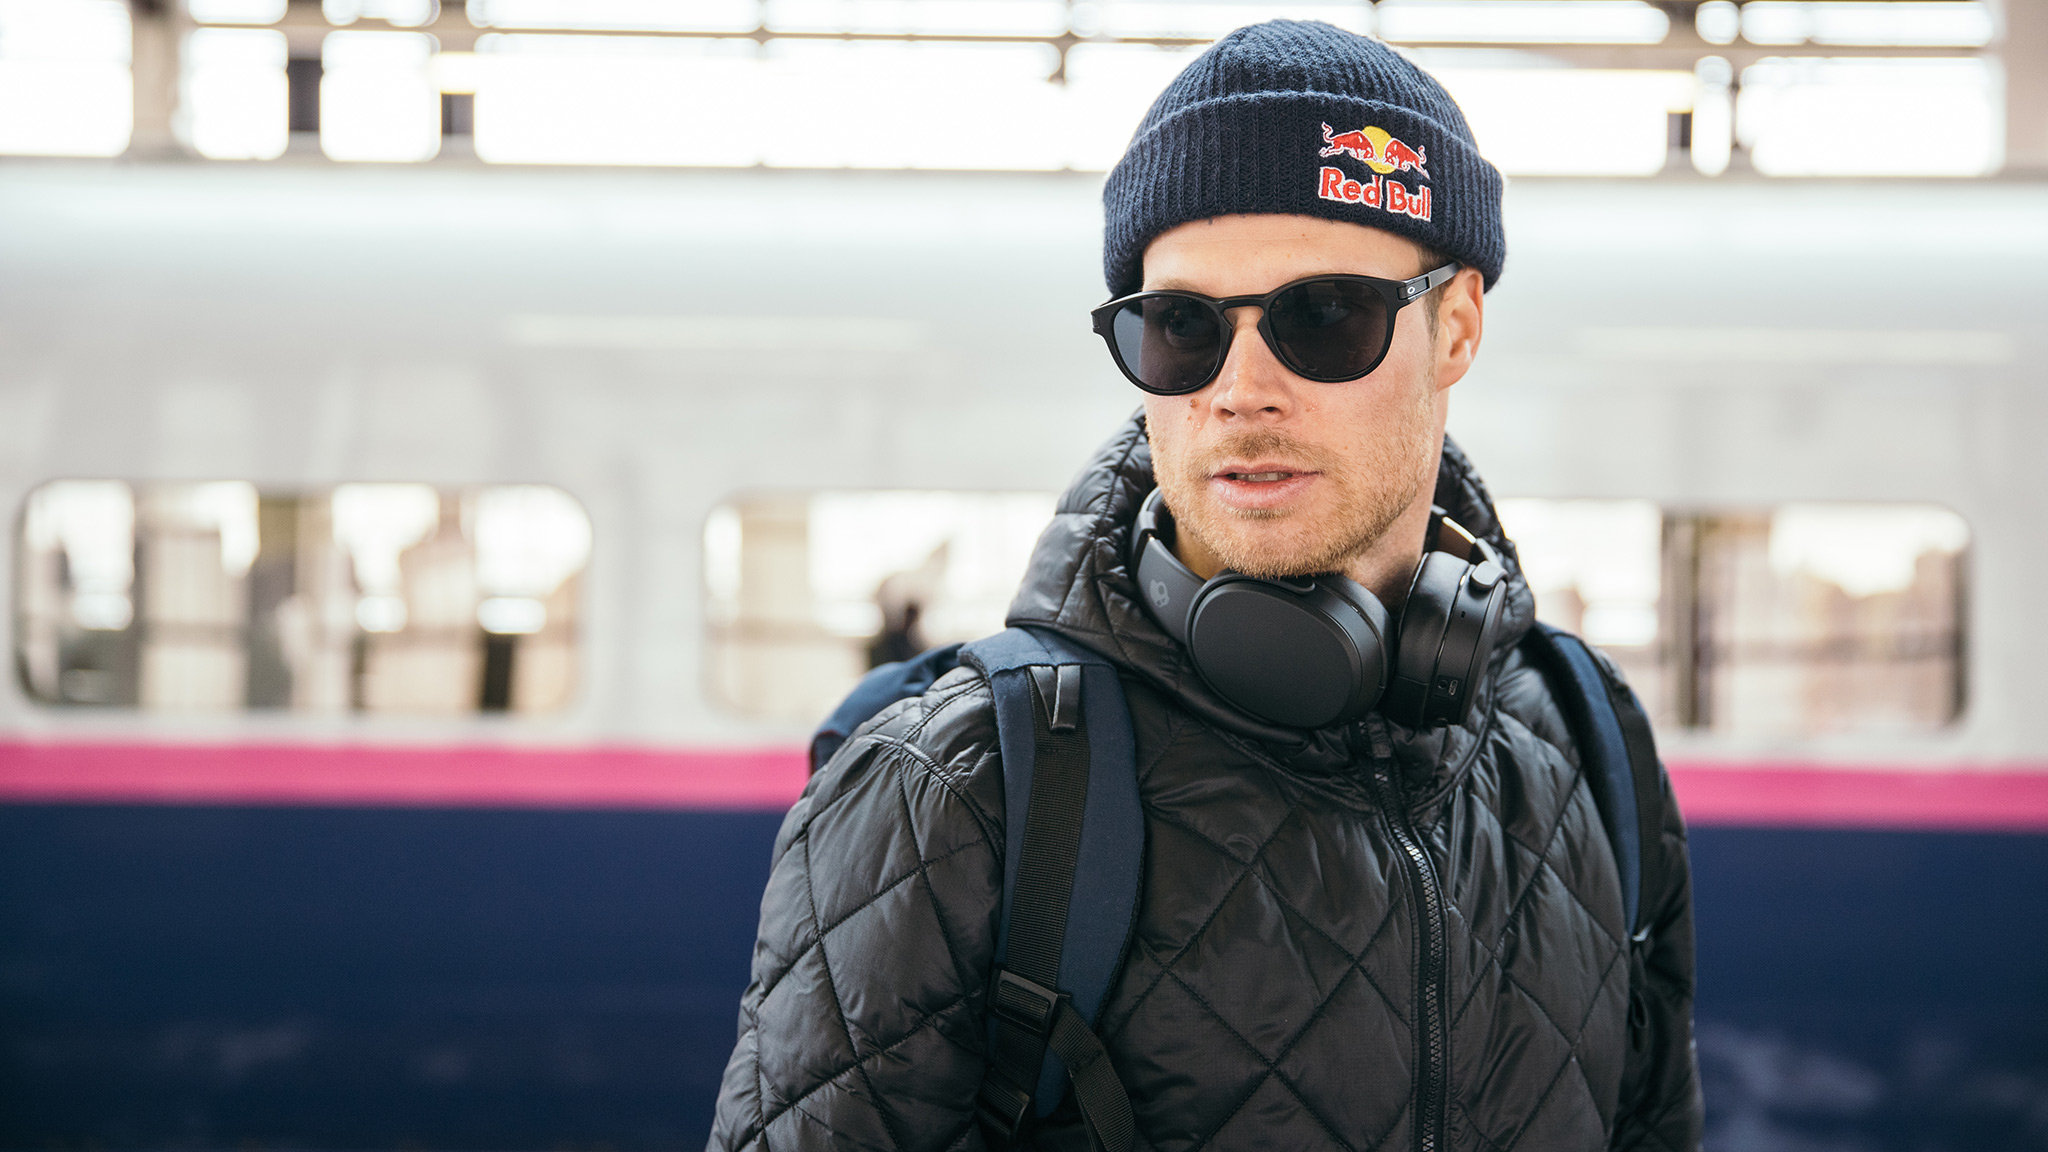 Judge: Eero Ettala